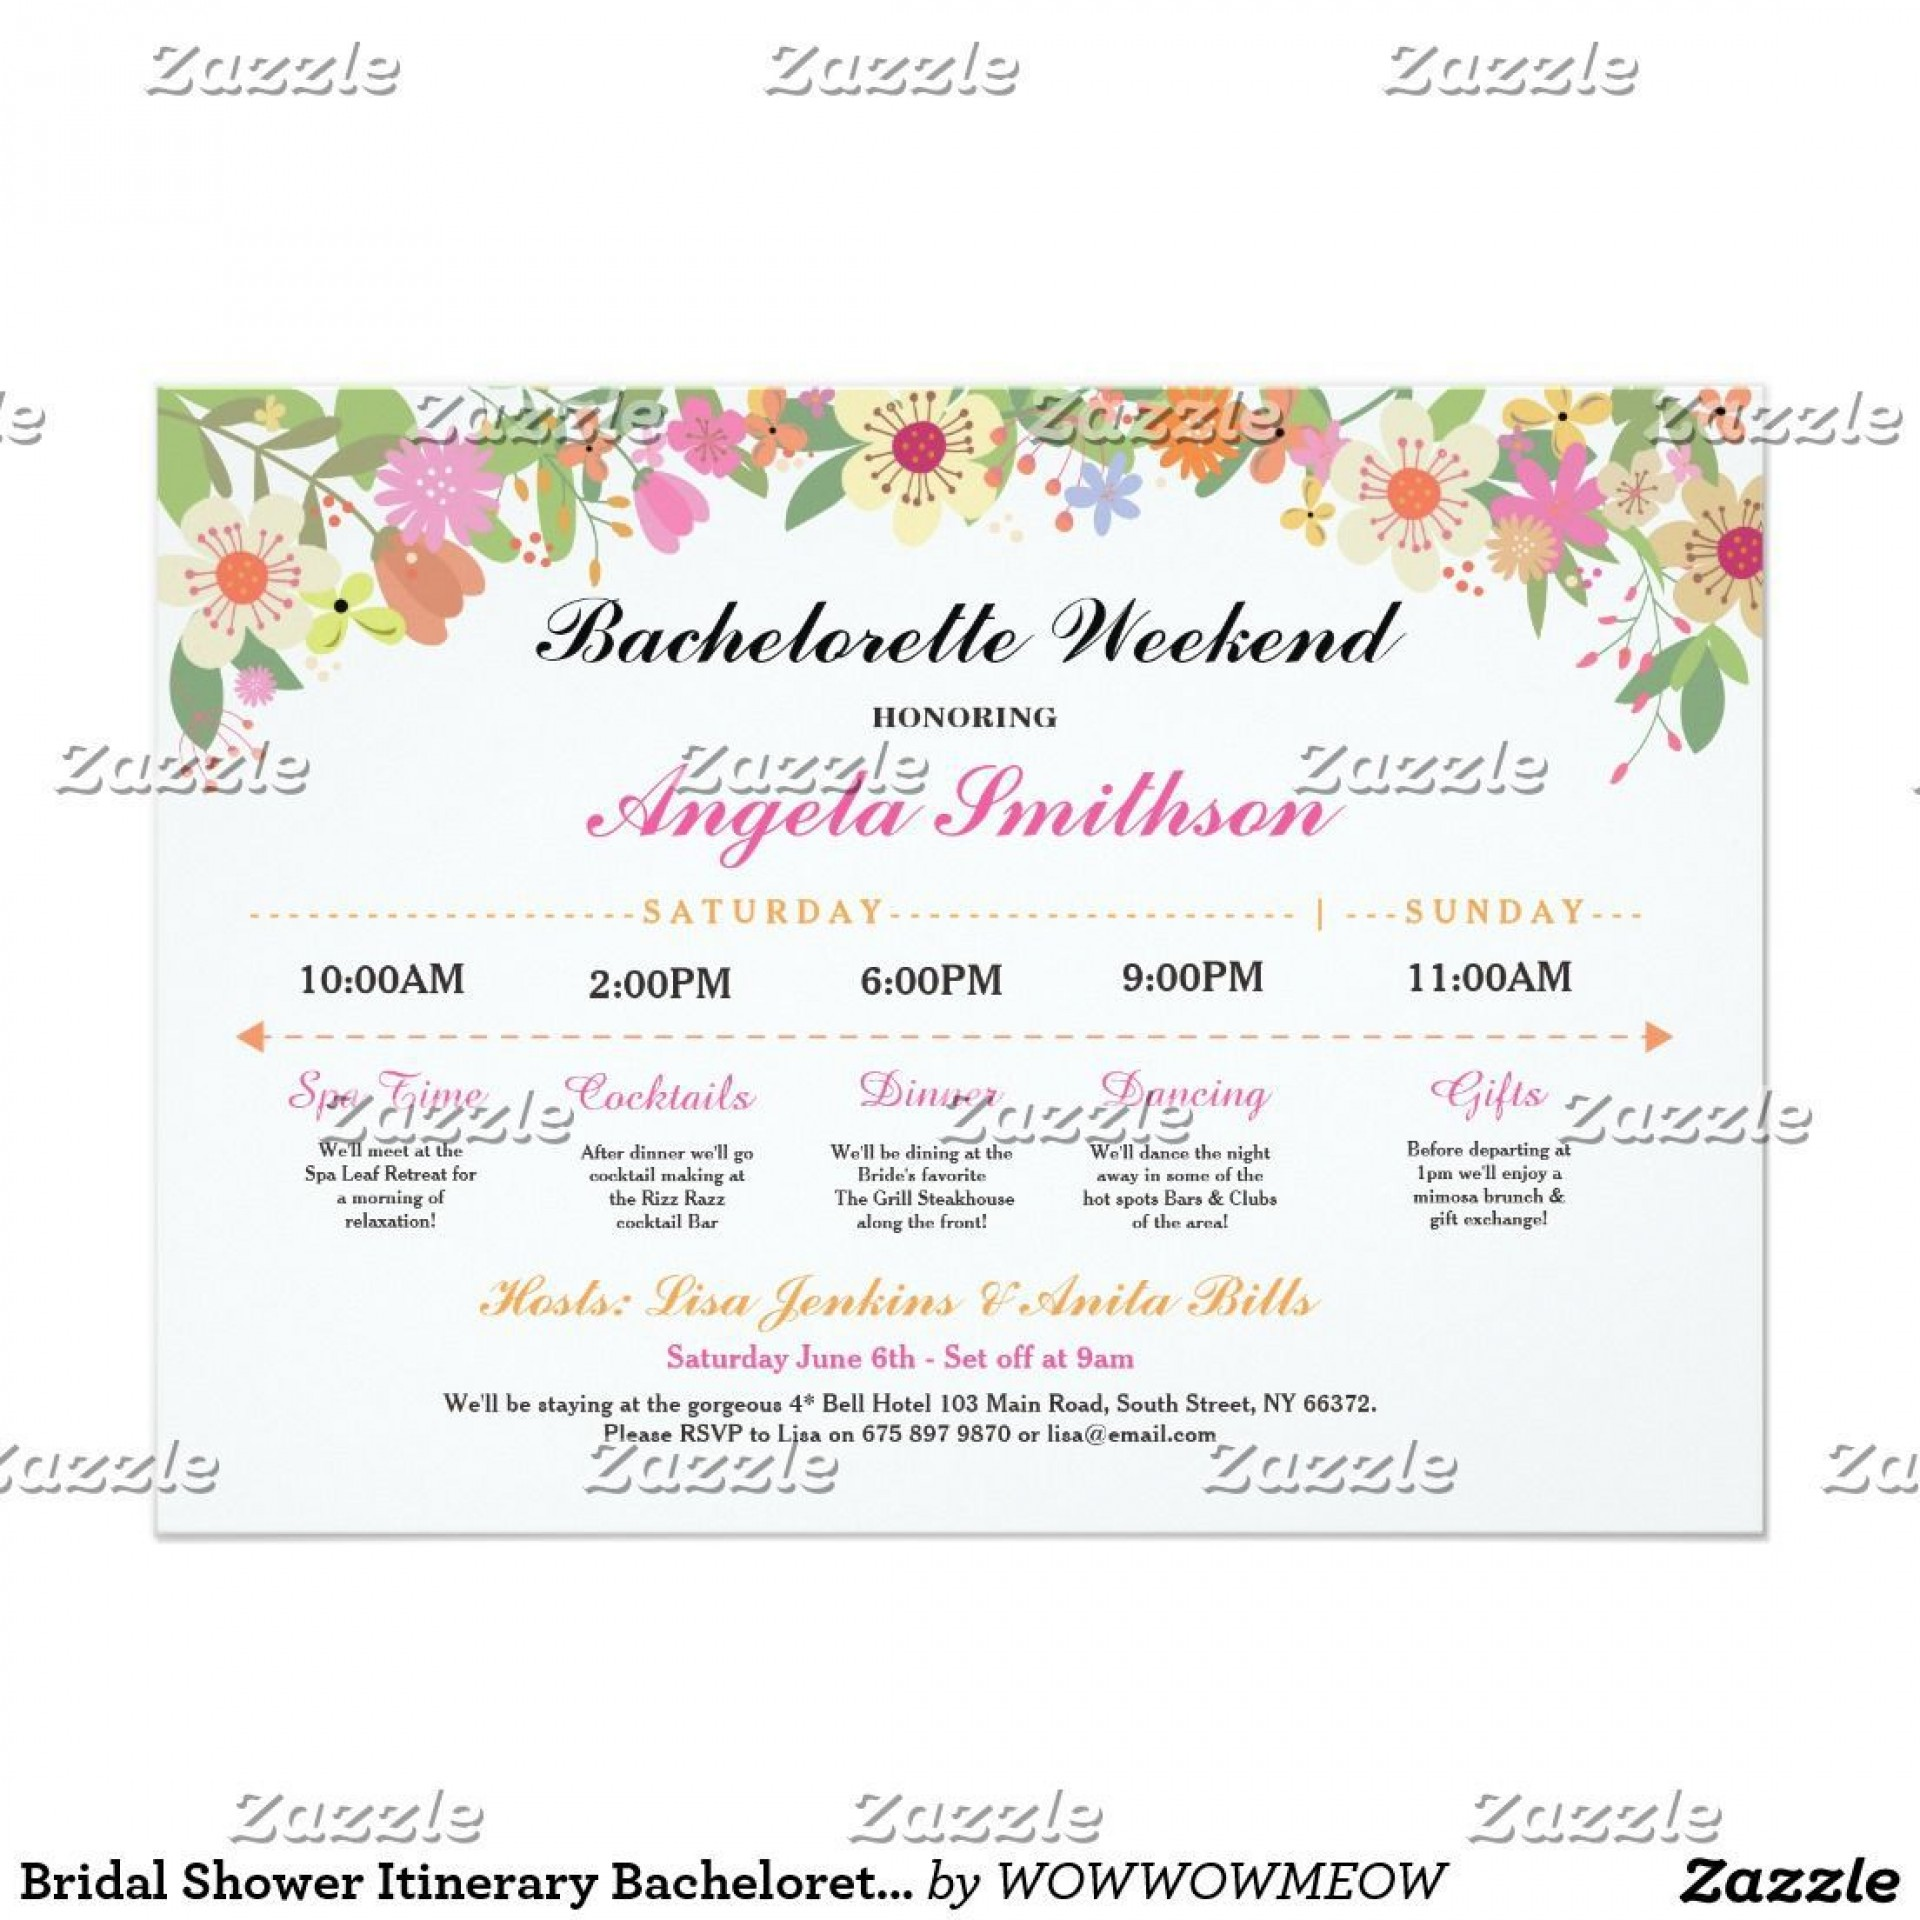 000 Exceptional Bachelorette Party Itinerary Template Free High Definition  Download1920